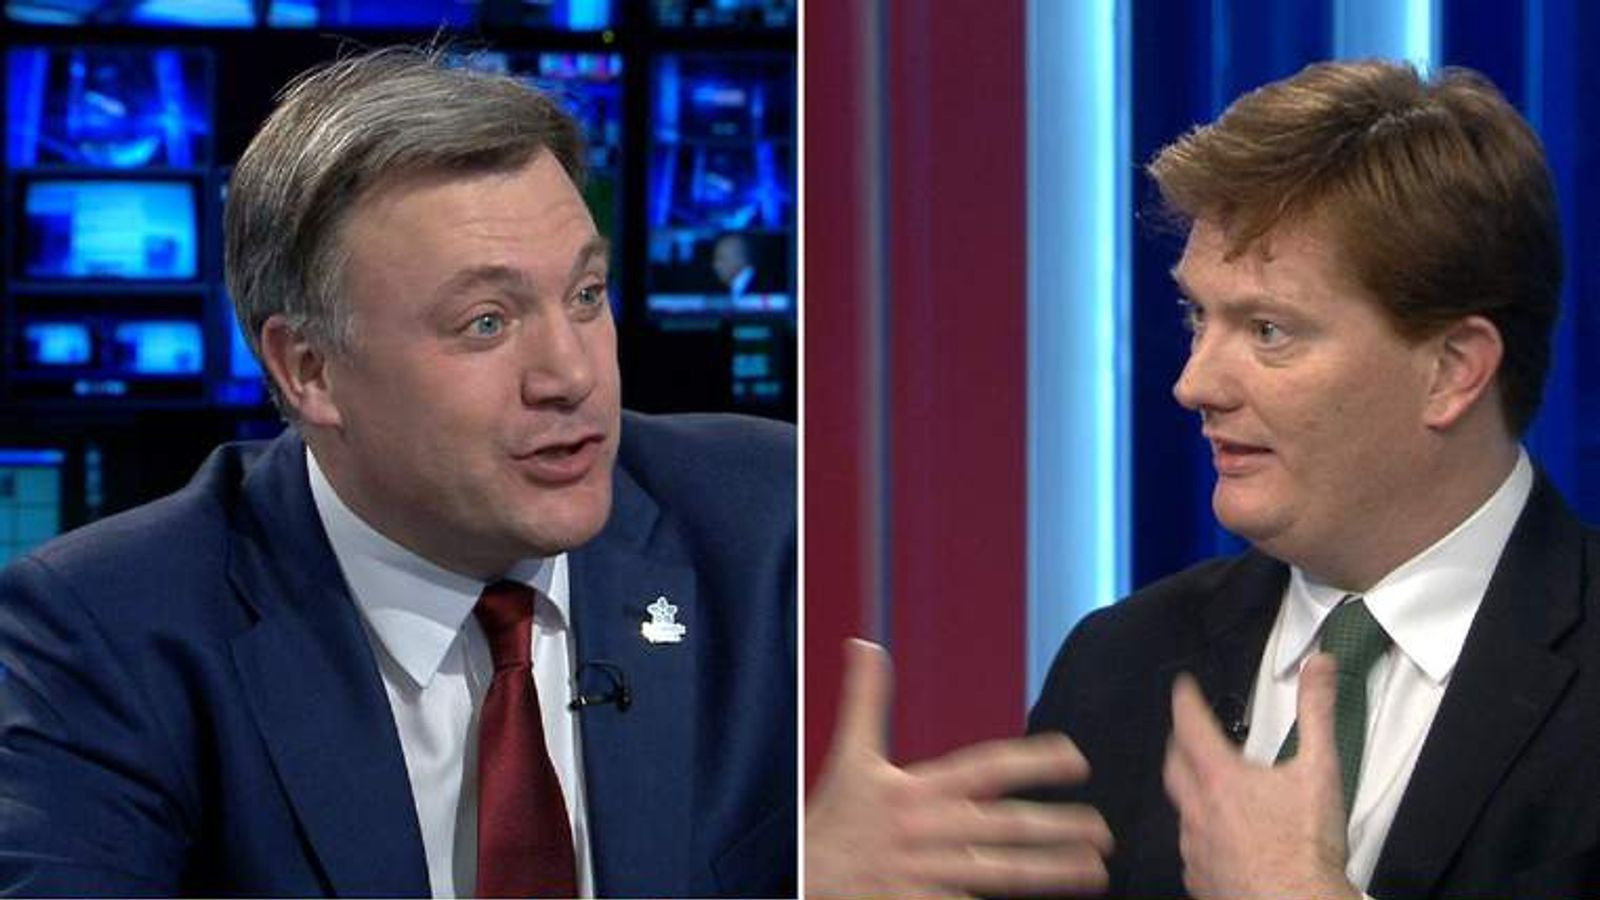 Composite of Ed Balls and Danny Alexander